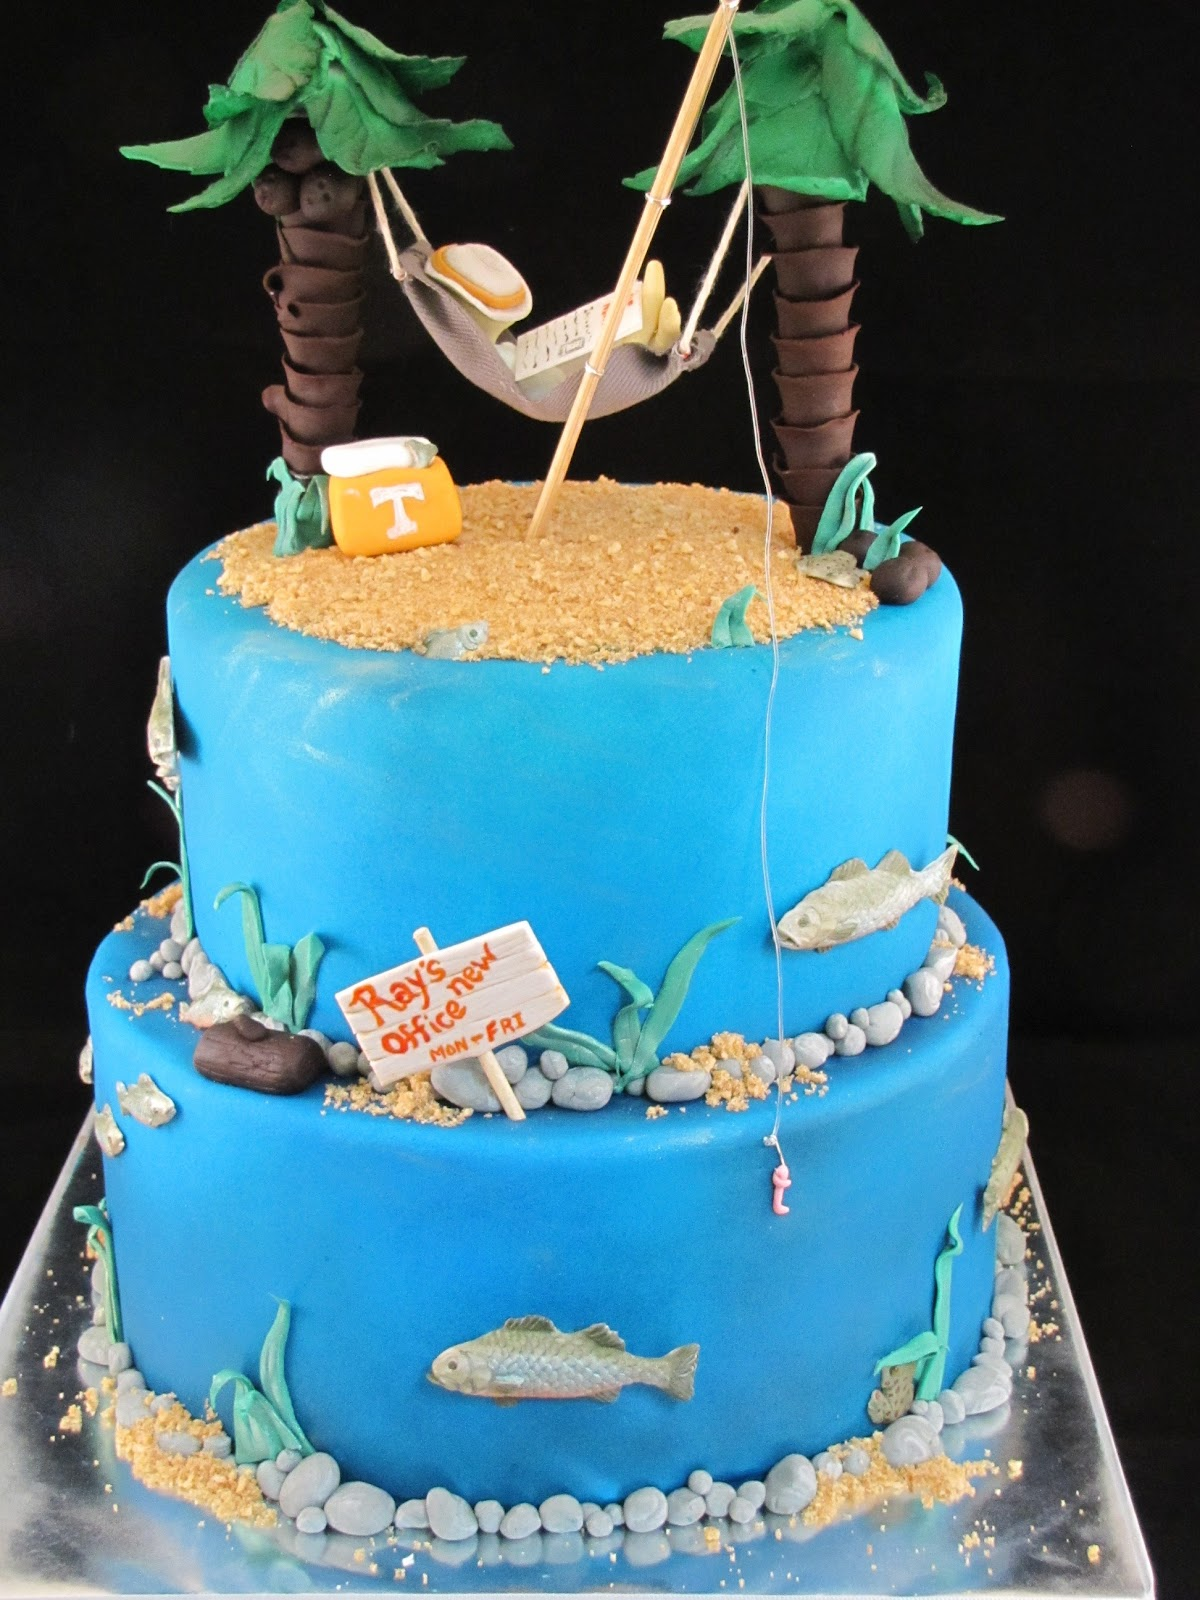 Funny Retirement Cakes Cake Ideas And Designs